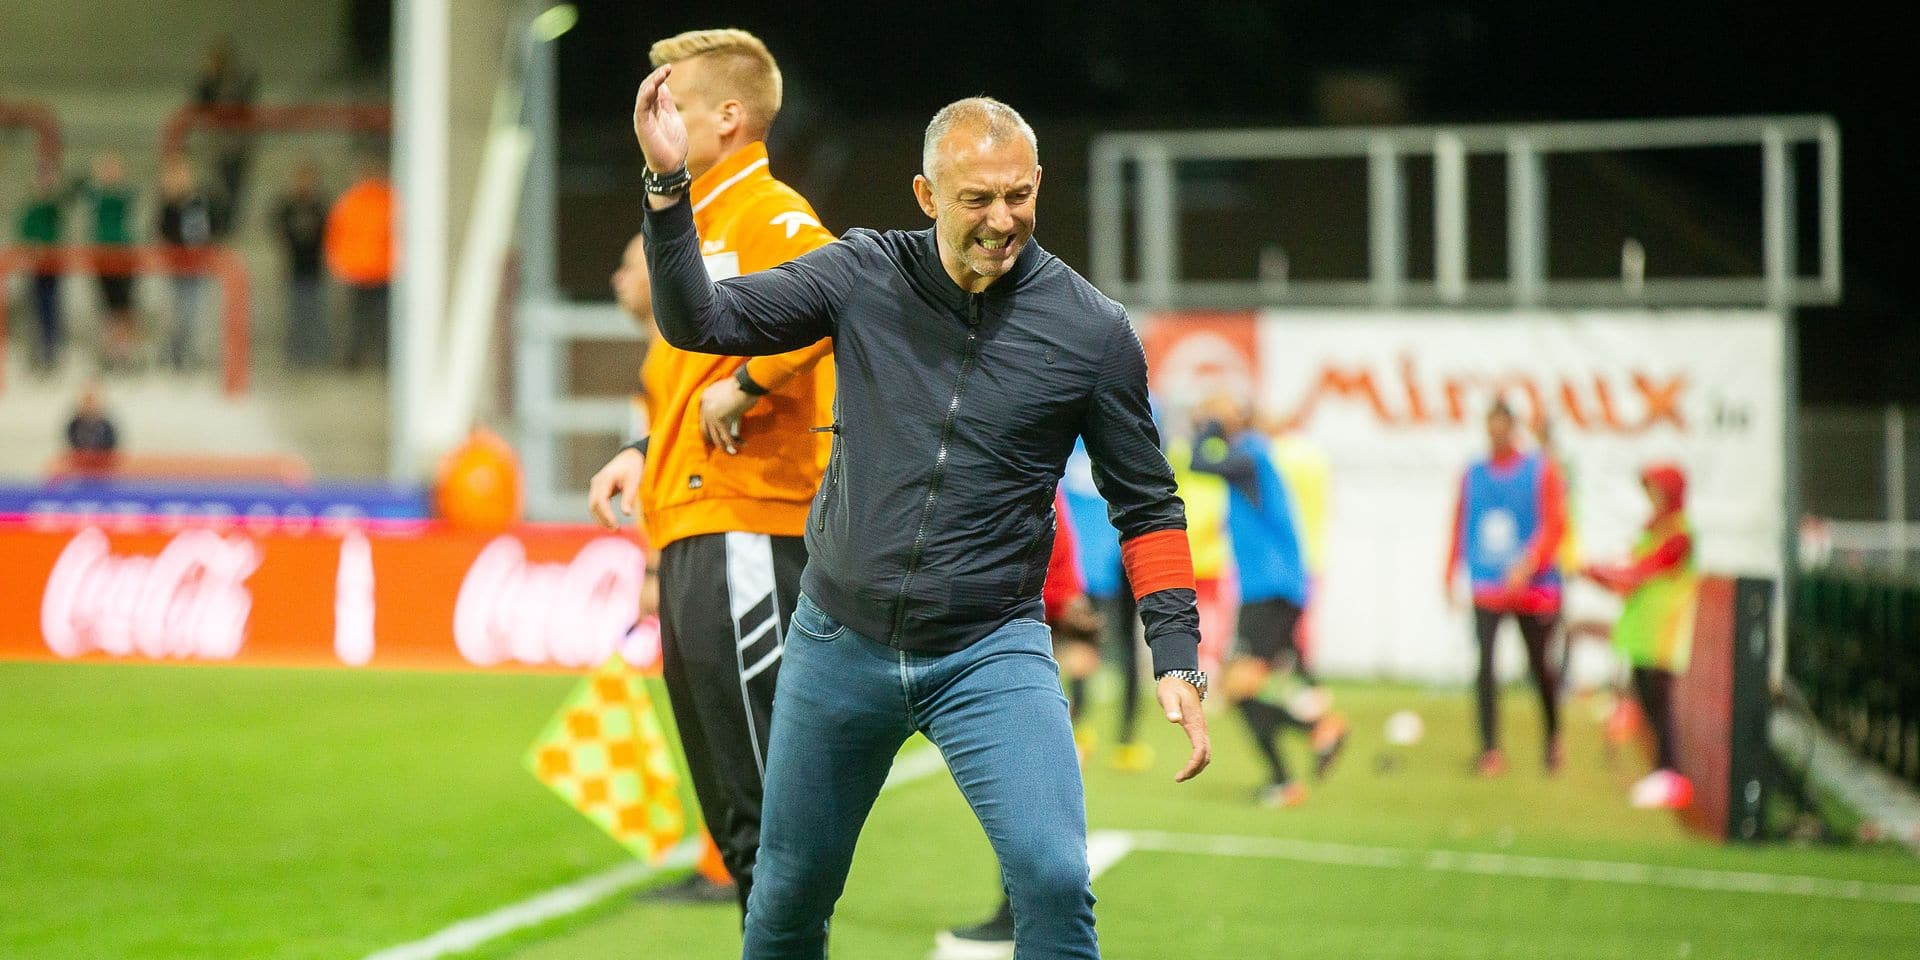 Mouscron's head coach Frank Defays pictured during the Jupiler Pro League match between Royal Excel Mouscron and KAS Eupen, in Mouscron, Saturday 25 August 2018, on the fifth day of the Jupiler Pro League, the Belgian soccer championship season 2018-2019. BELGA PHOTO JAMES ARTHUR GEKIERE